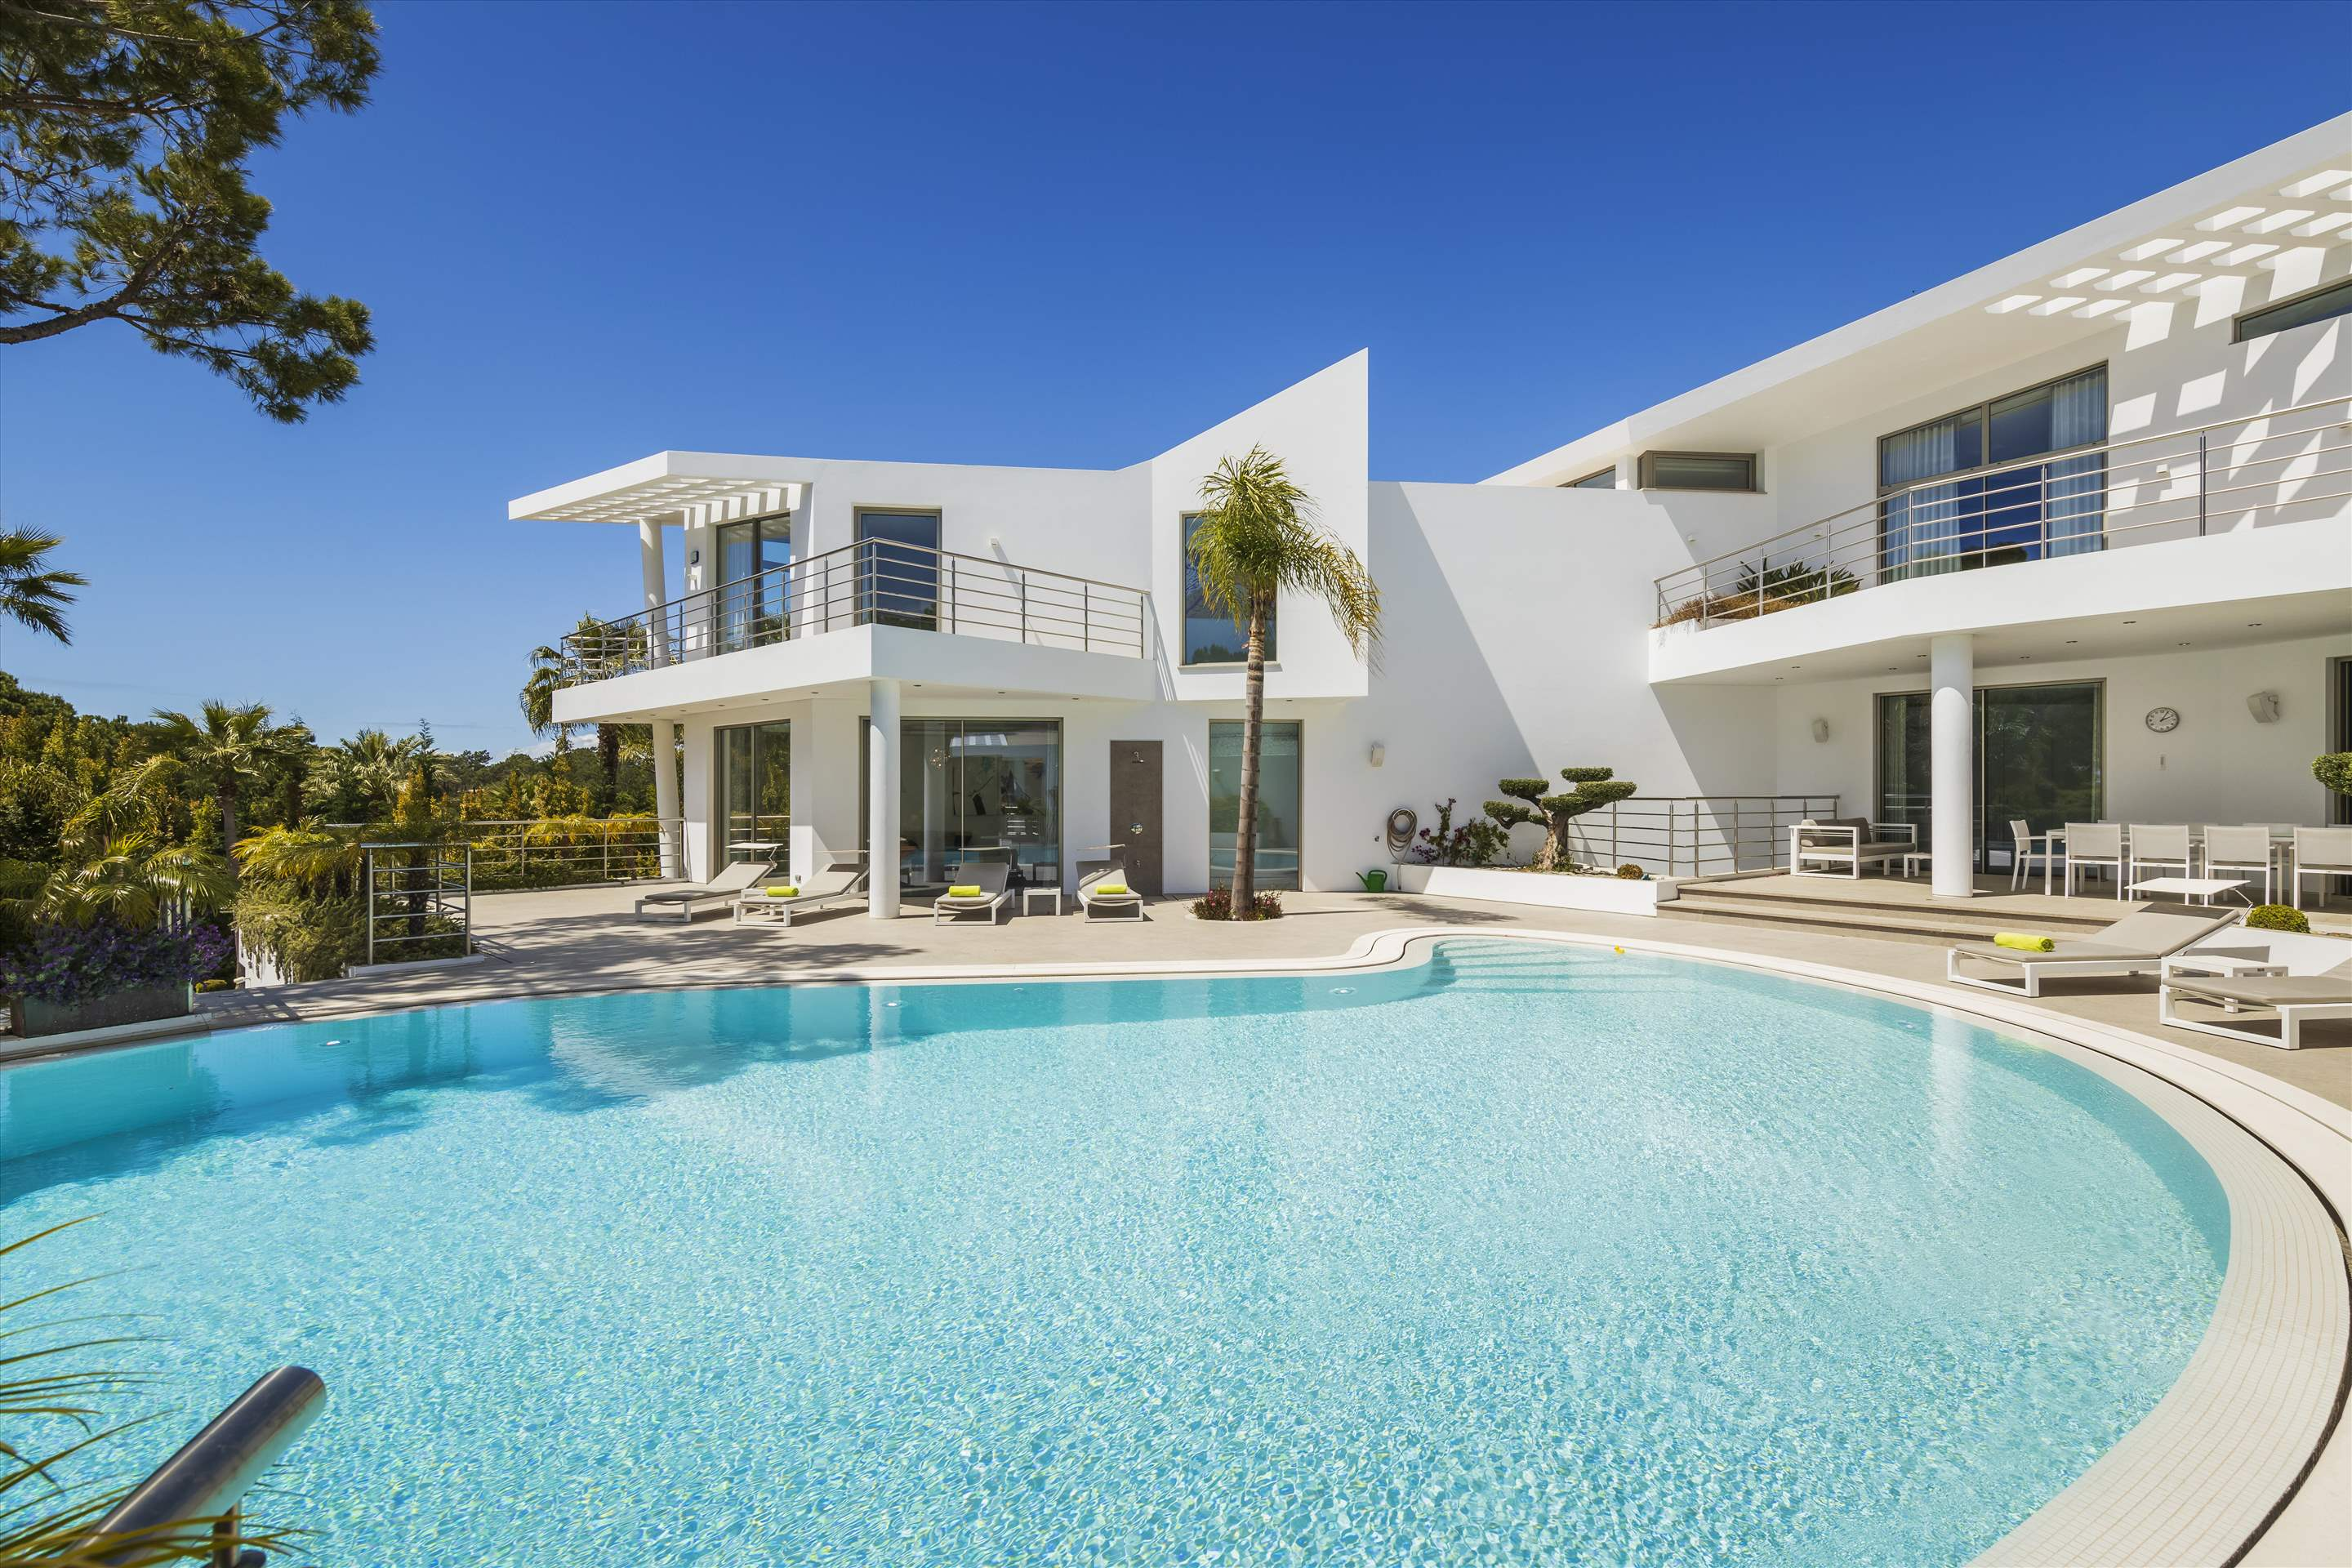 Villa Palm, 6 bedroom villa in Quinta do Lago, Algarve